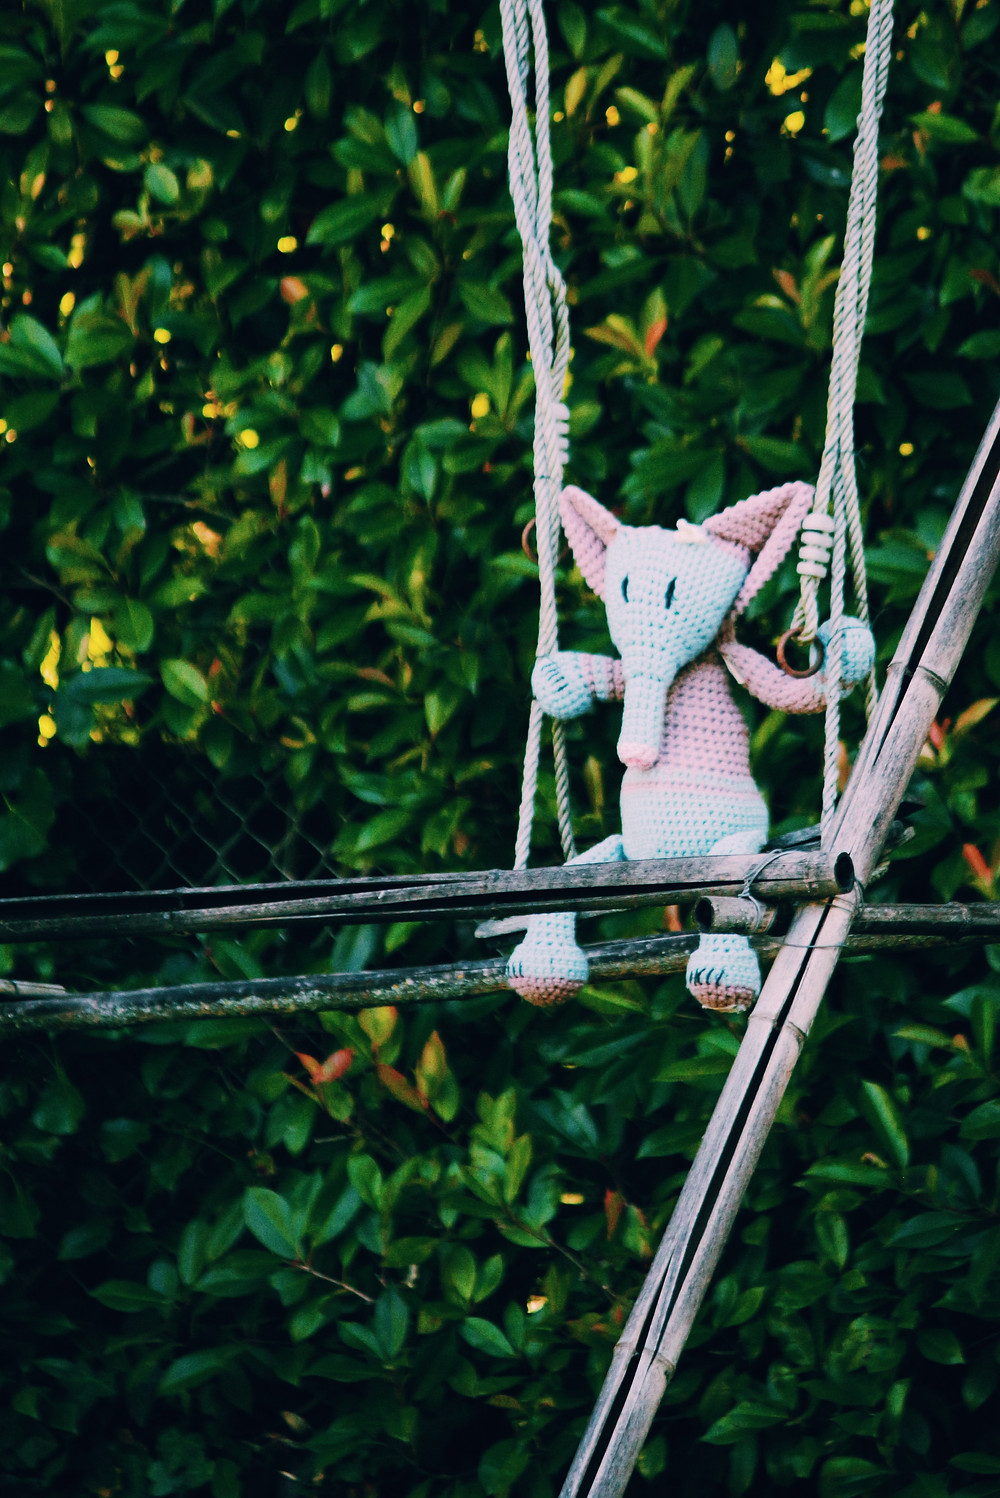 A knitted elephant sits on a wooden swing, with green trees in the background. Photo by Emeric Deroubaix on Unsplash.